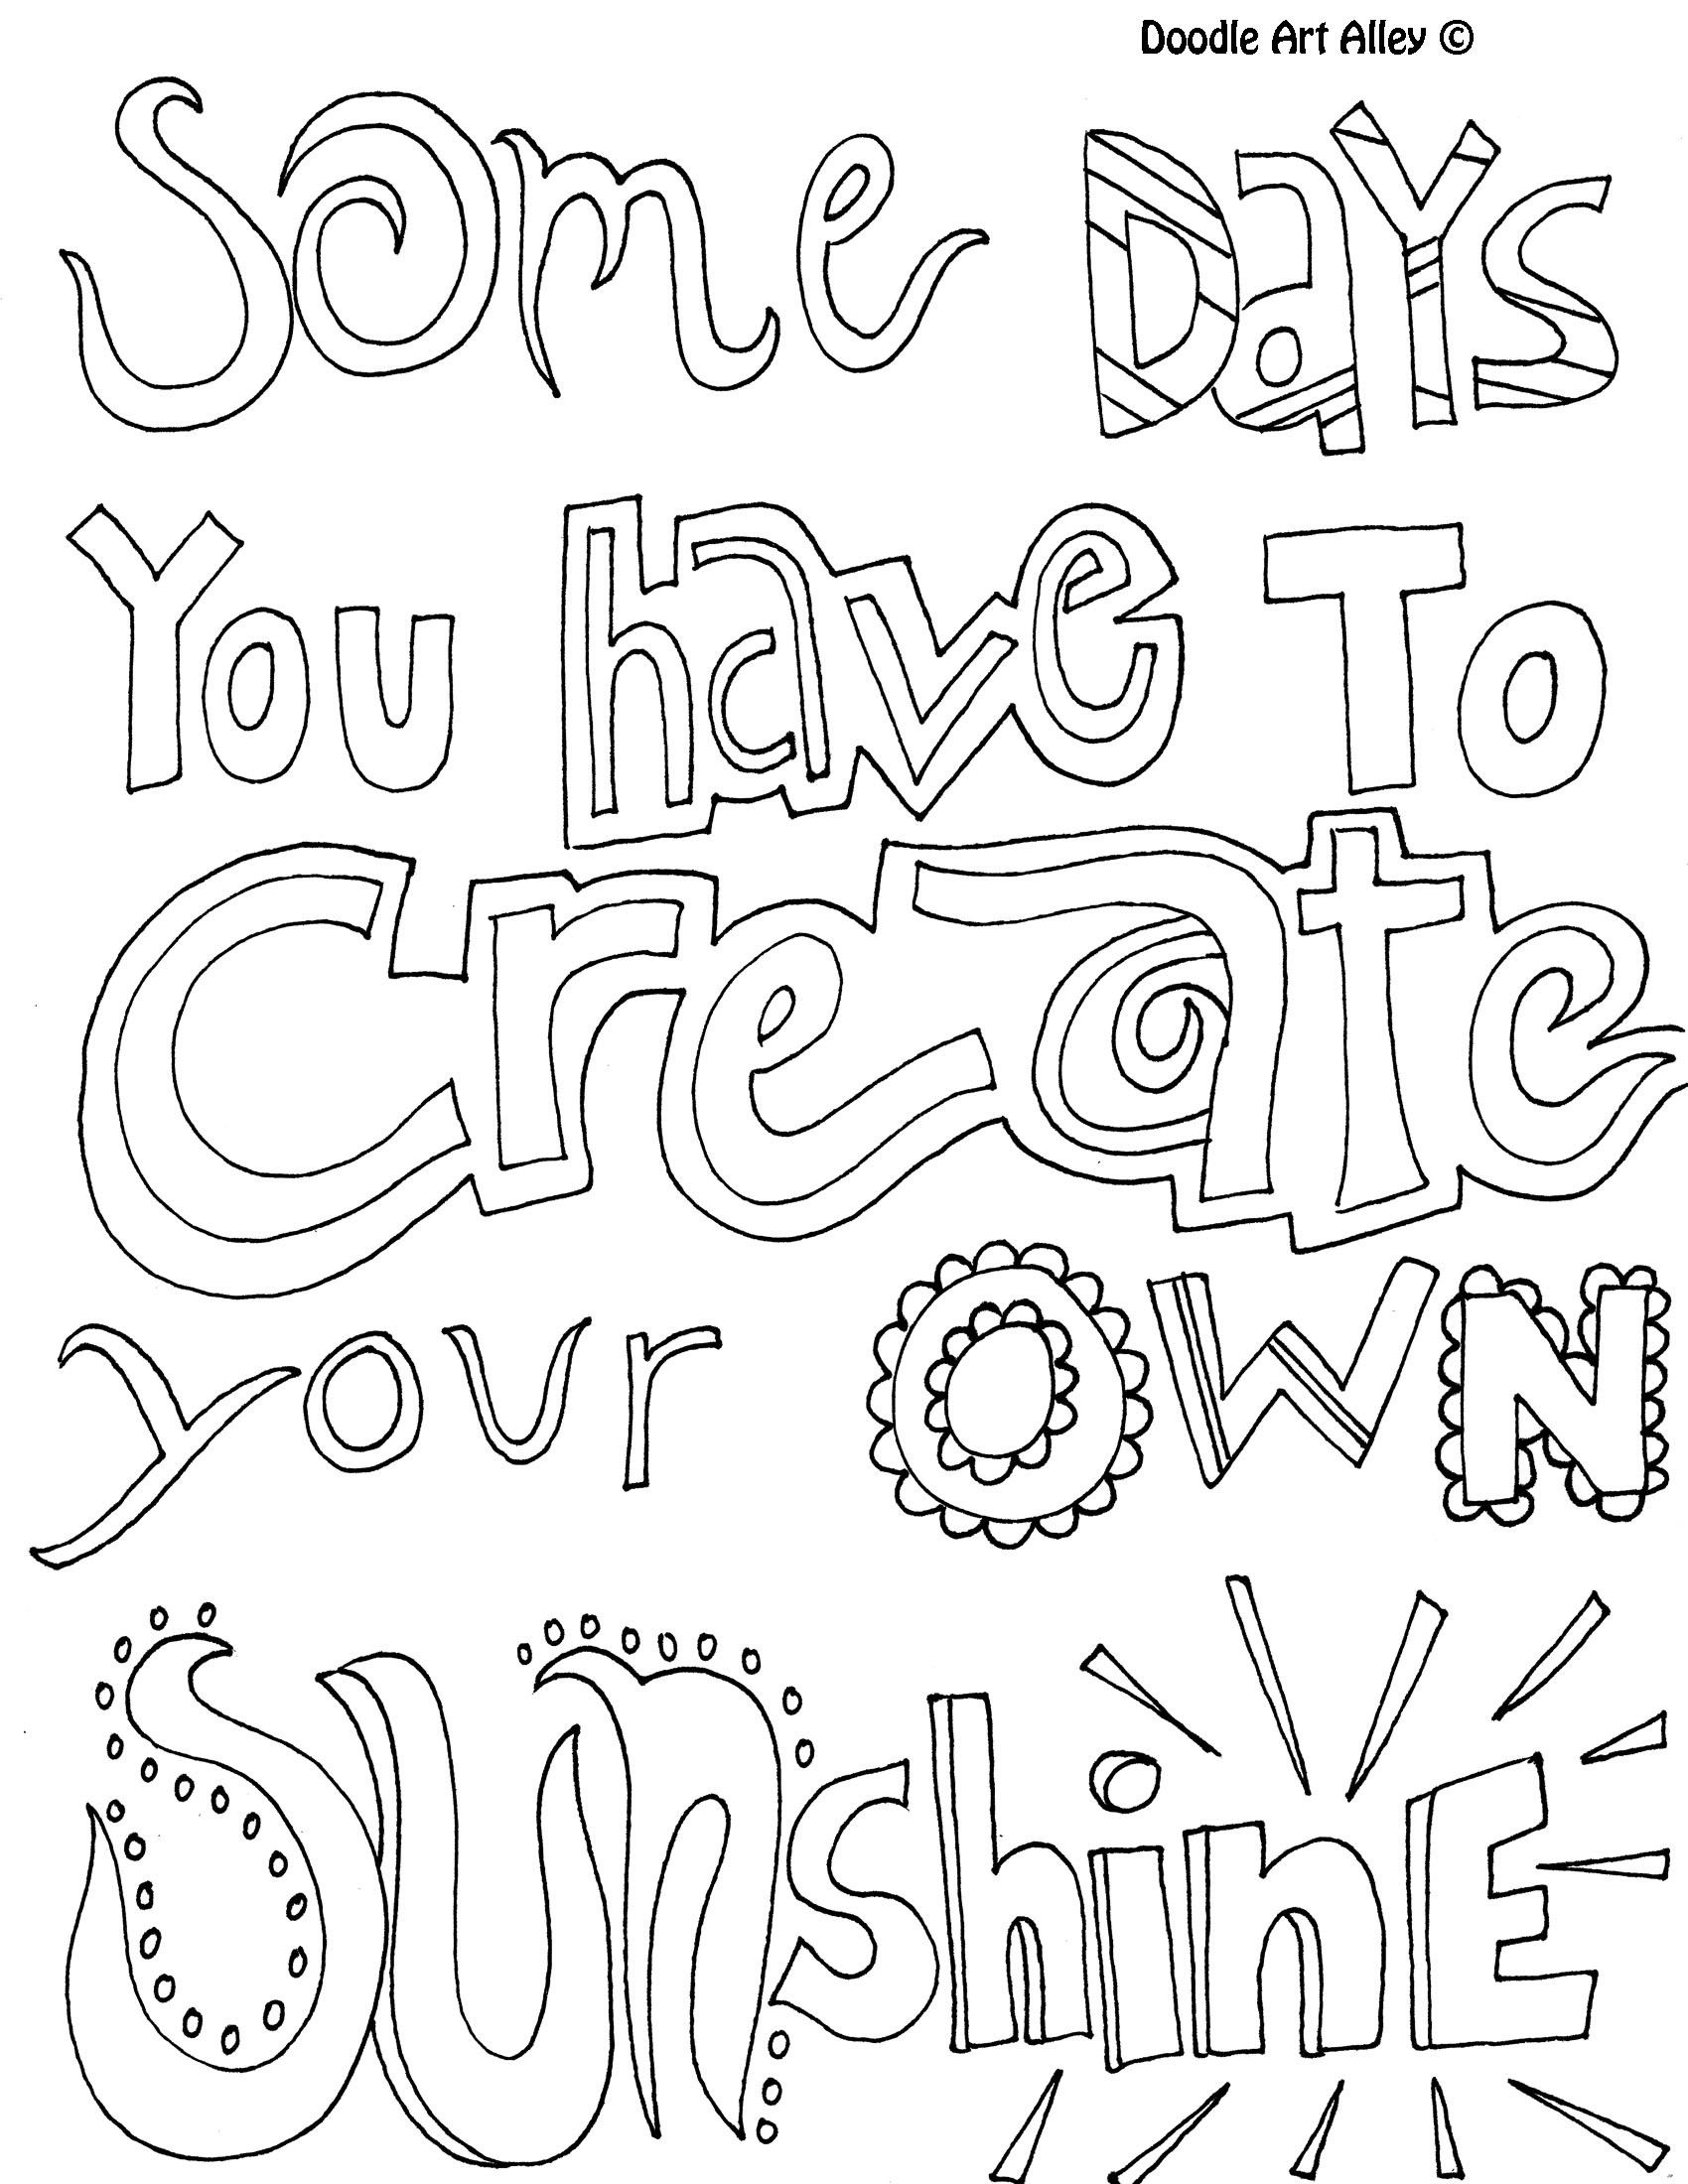 Printable coloring pages with sayings - Quote Coloring Pages Printable Coloring Pages Sheets For Kids Get The Latest Free Quote Coloring Pages Images Favorite Coloring Pages To Print Online